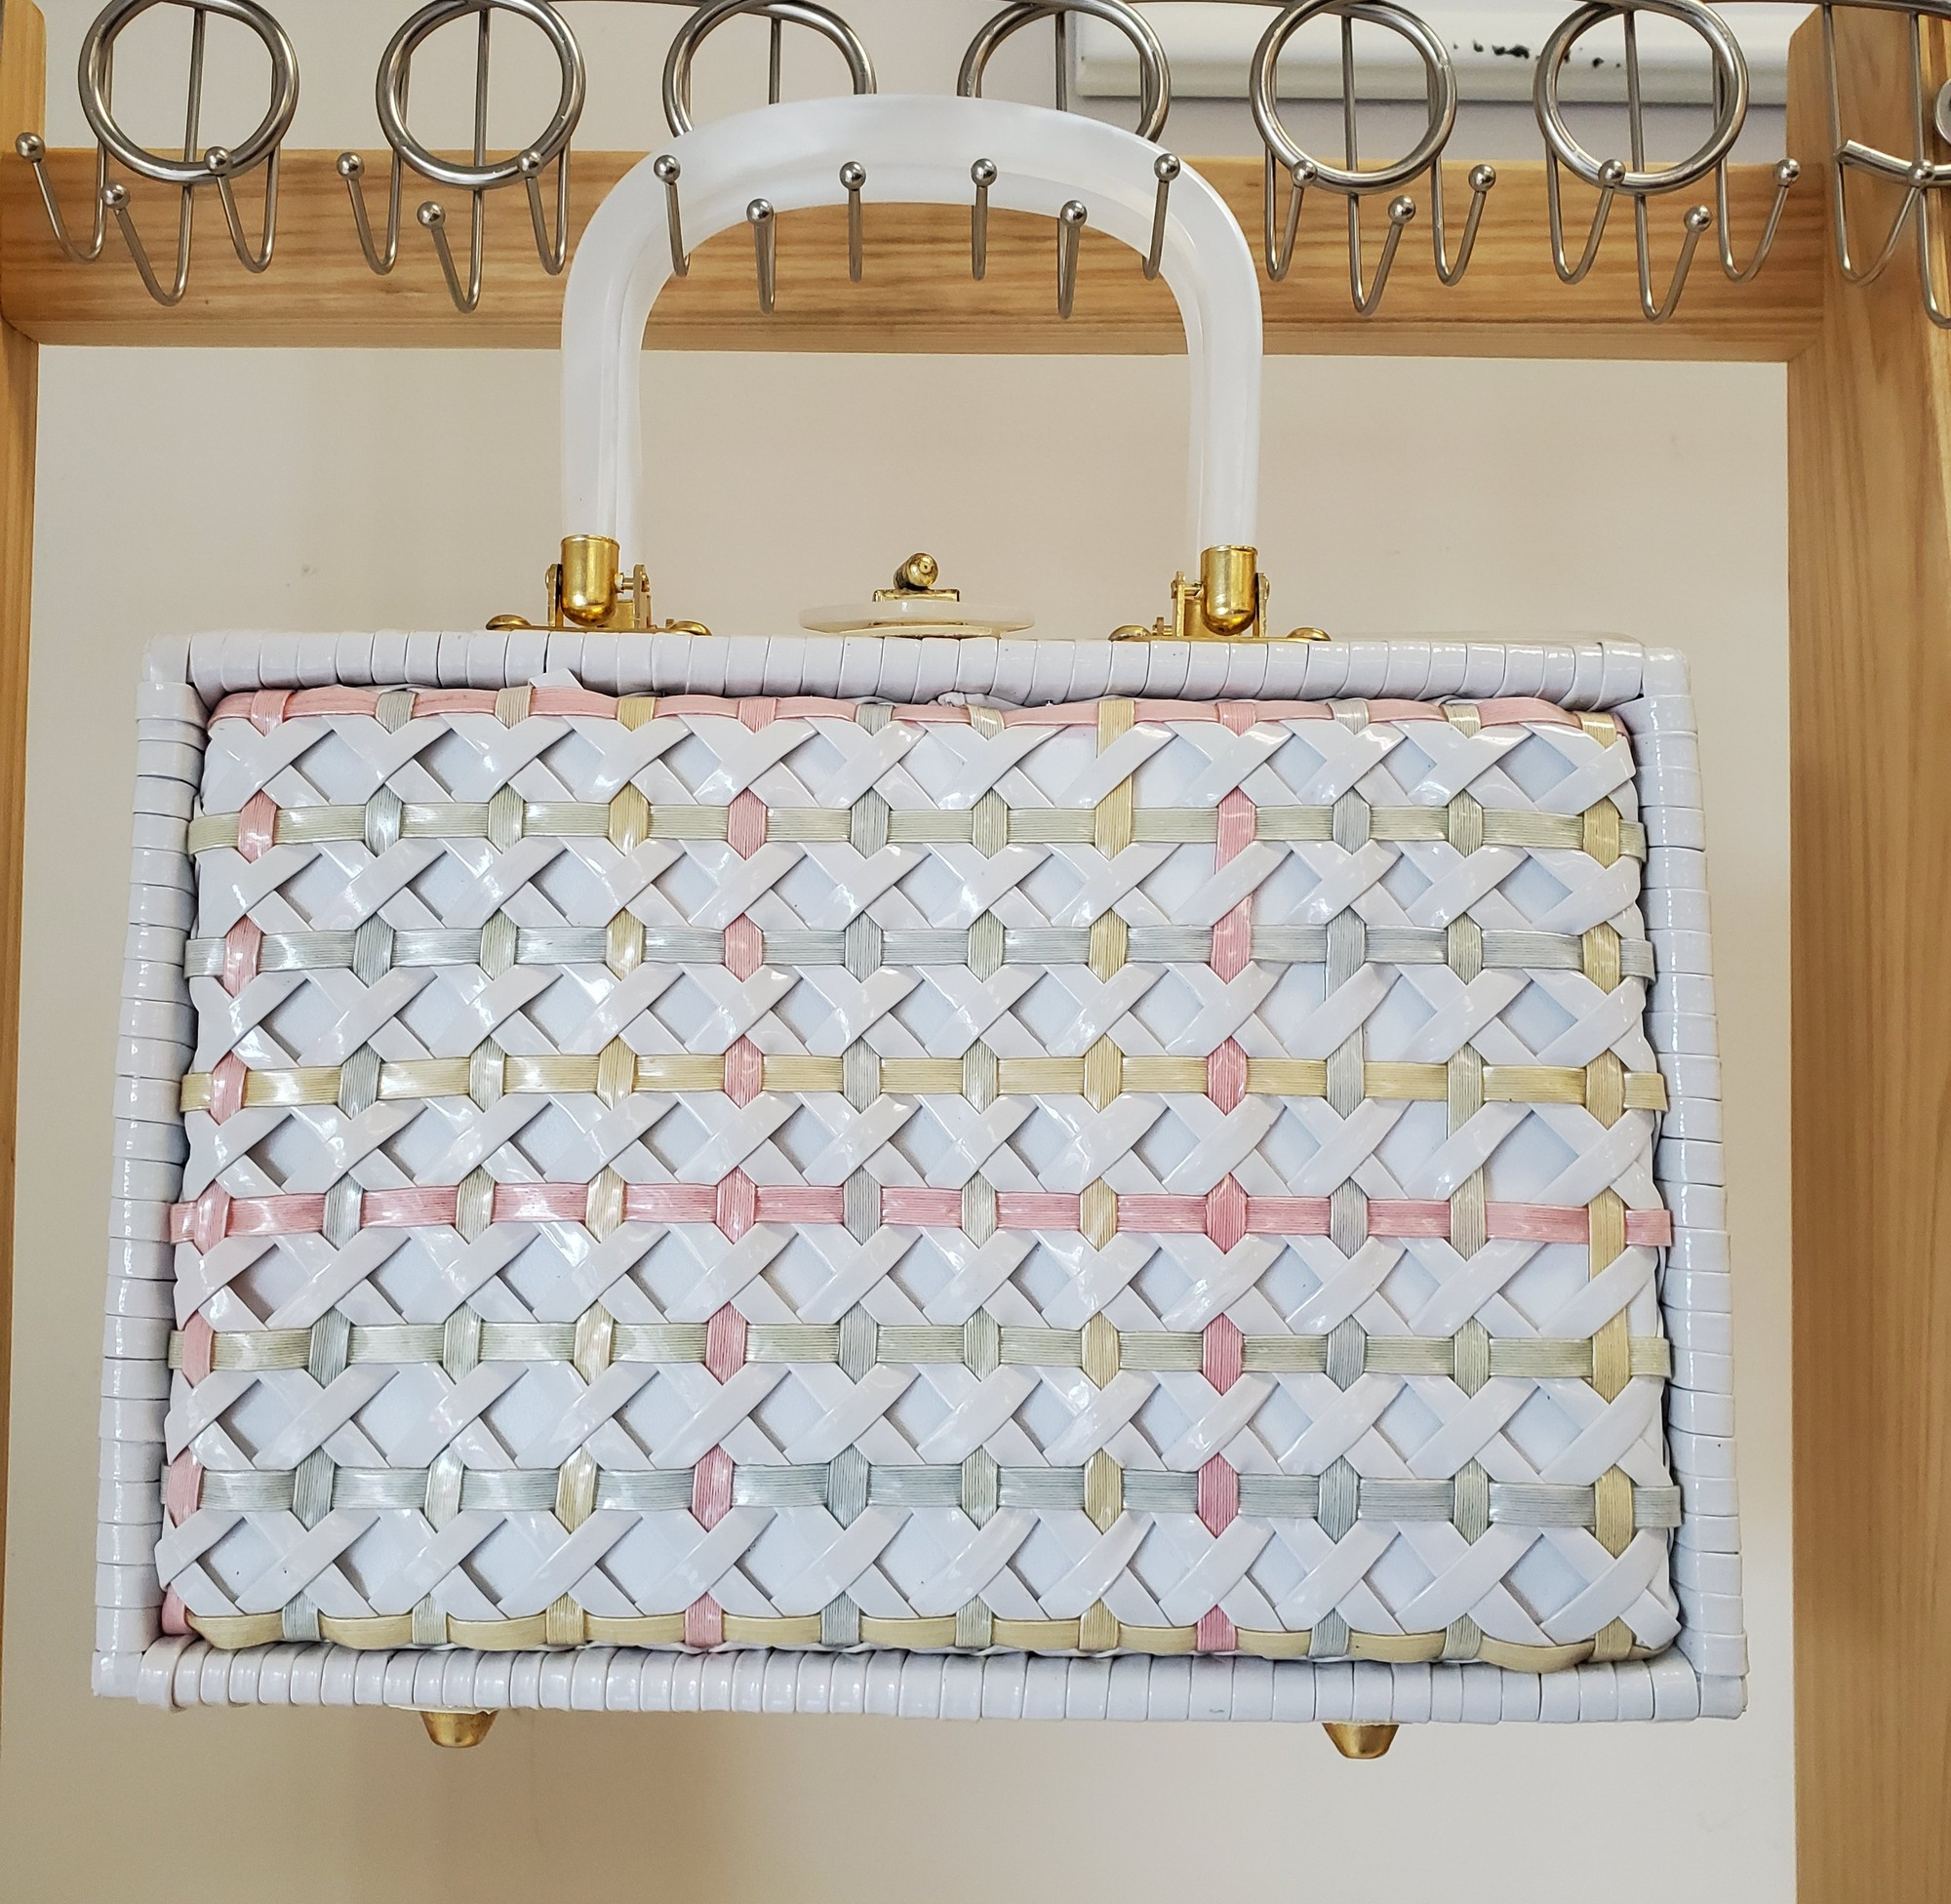 Stylecraft Miami<br /> Woven white with pink/gray<br /> Lunch box Style